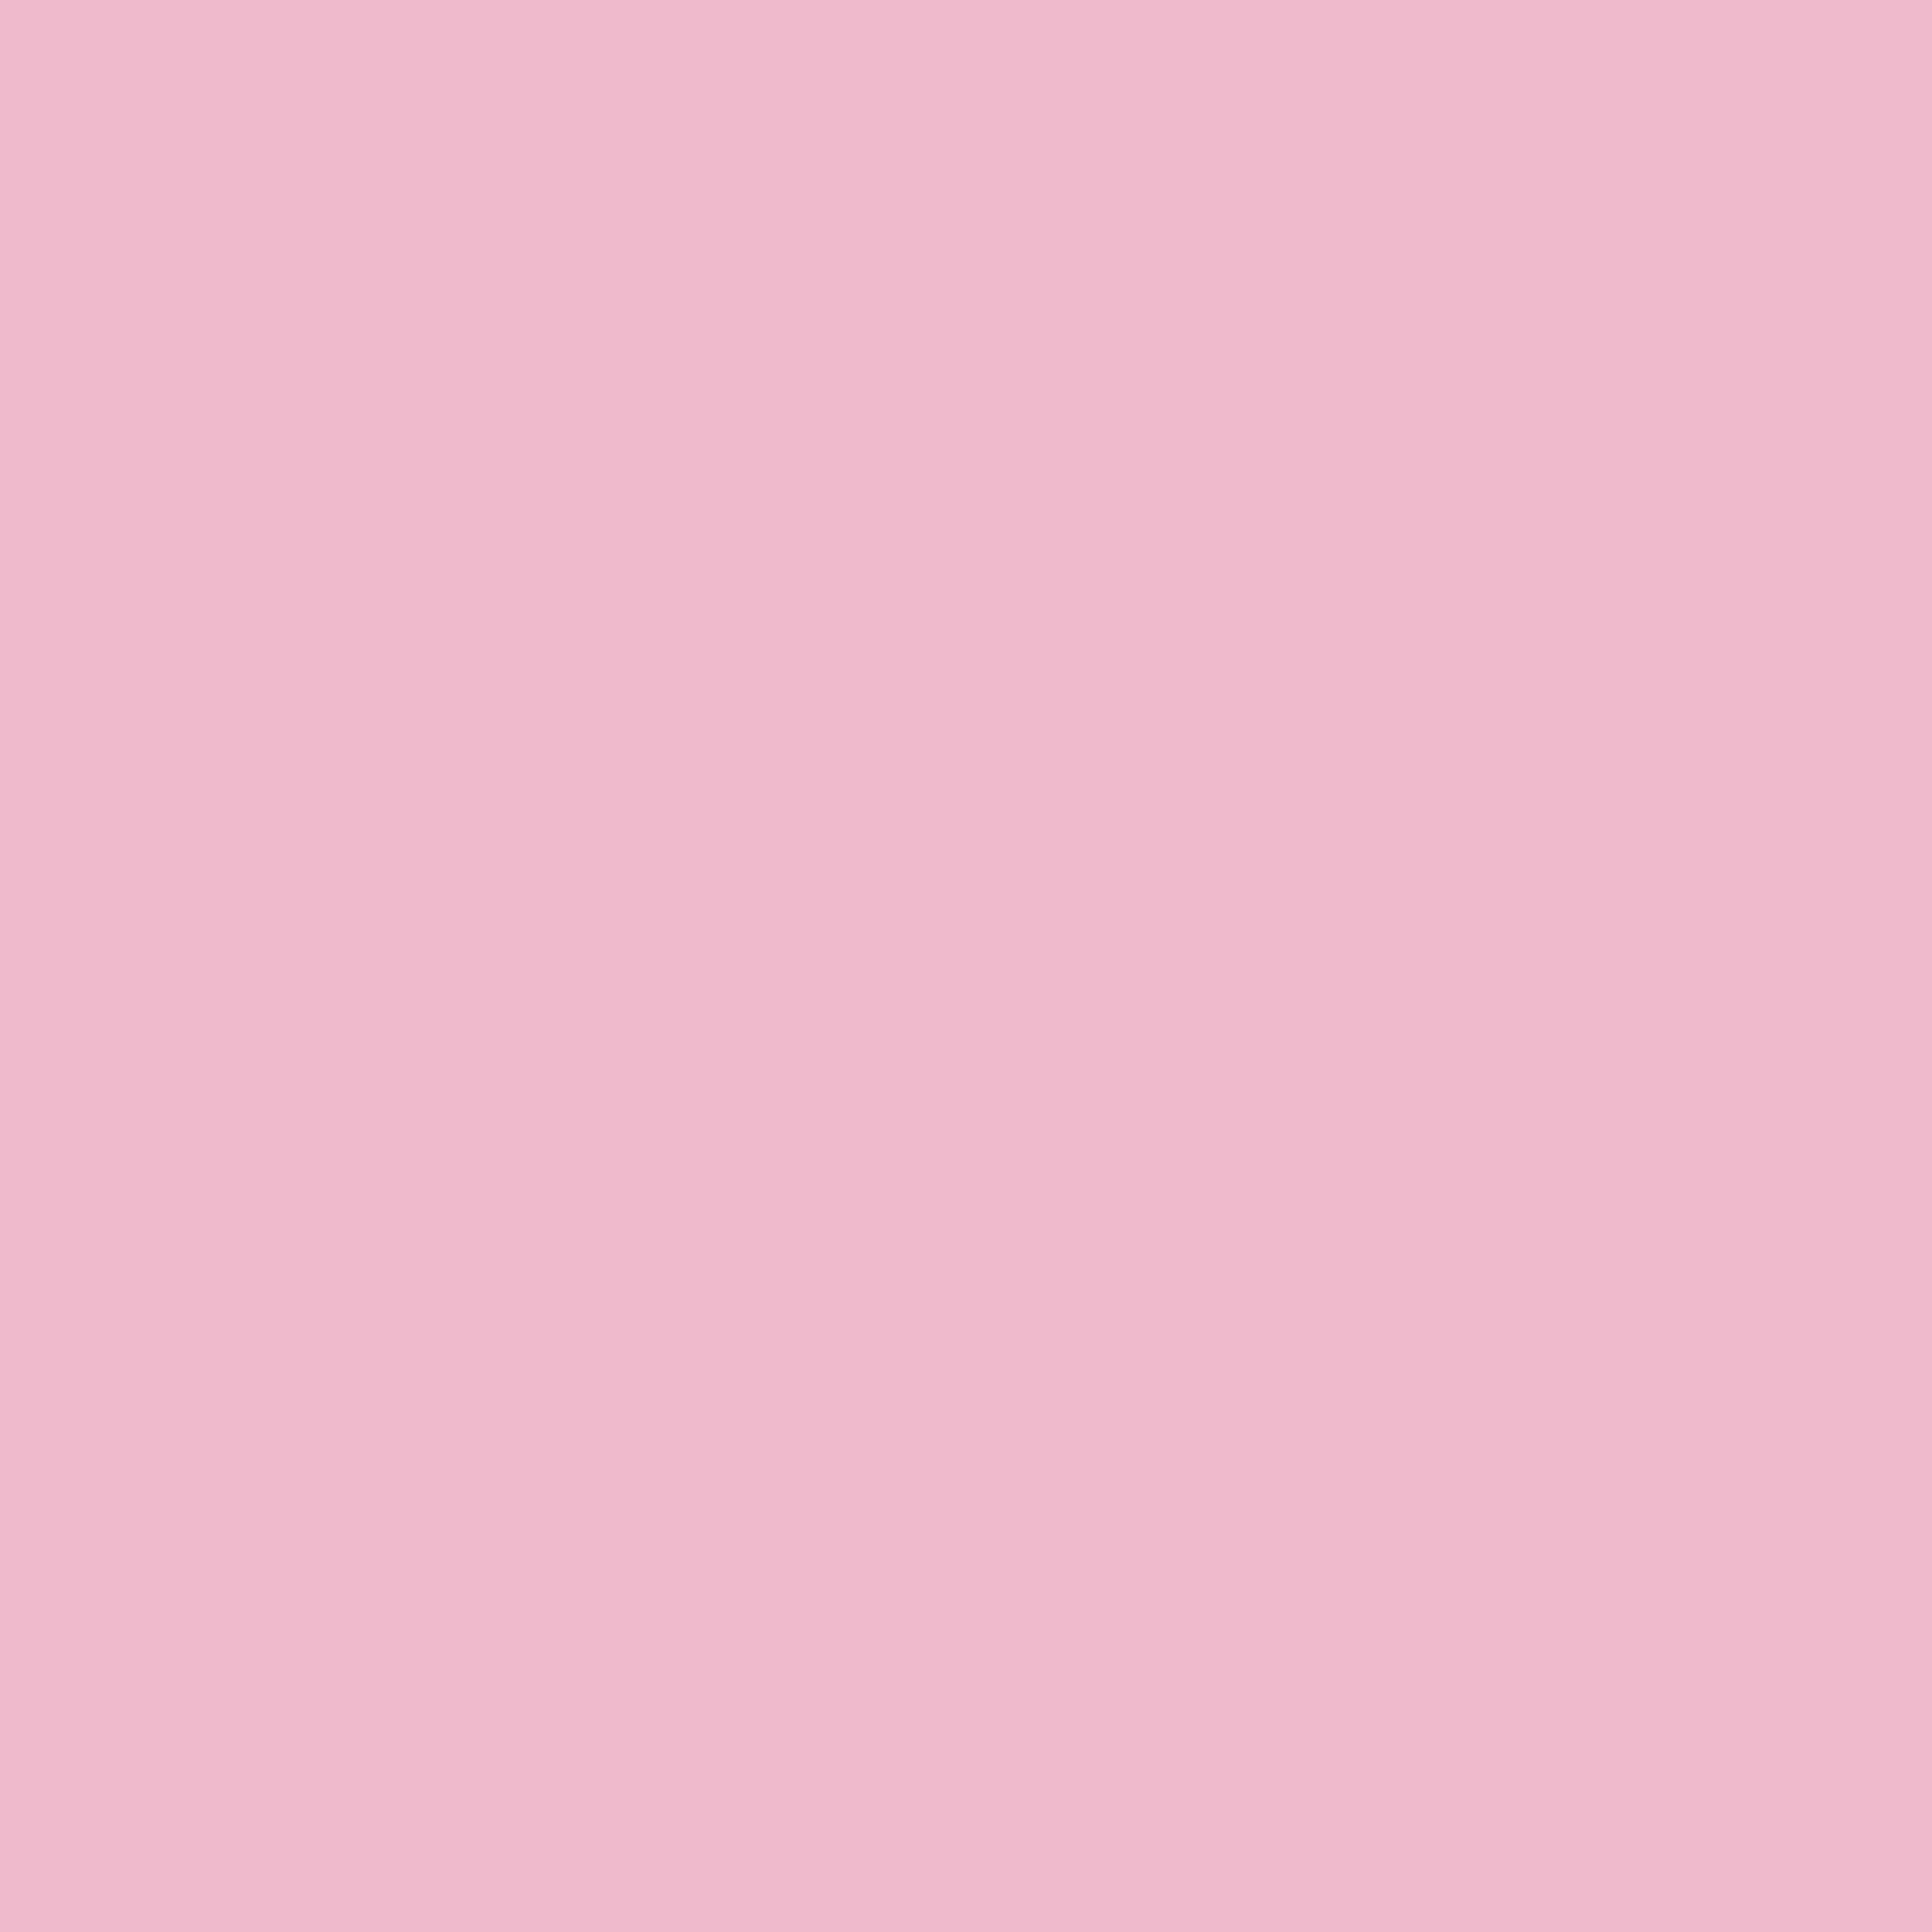 3600x3600 Cameo Pink Solid Color Background